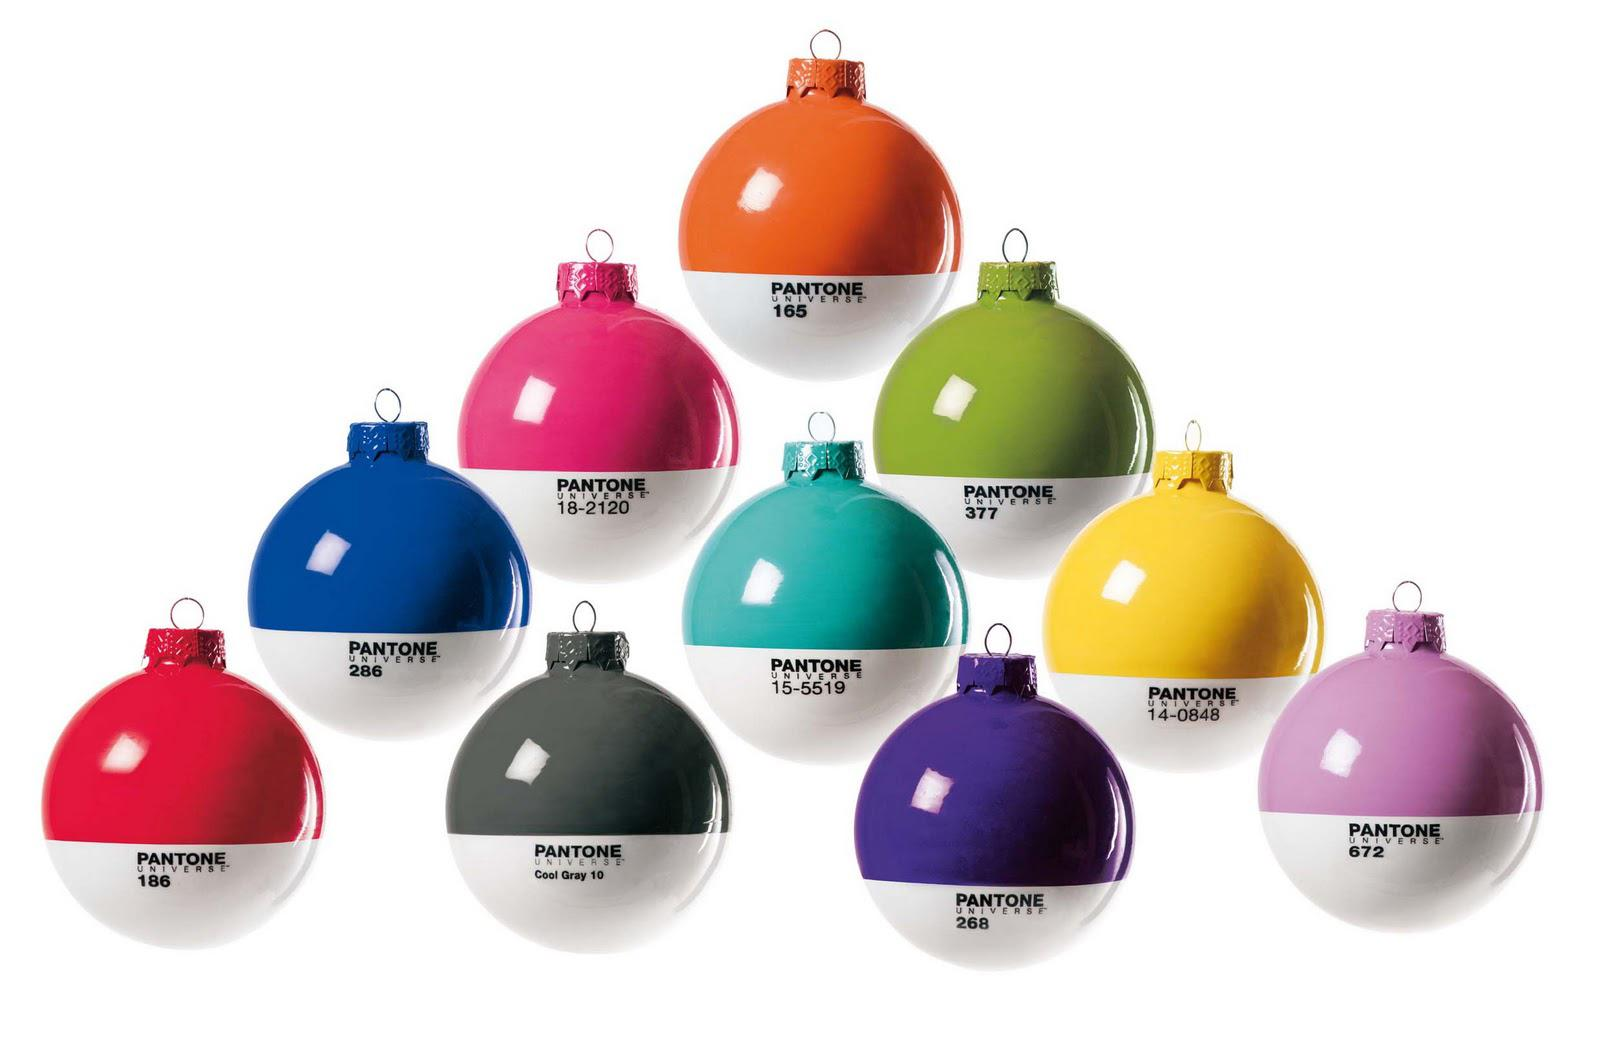 Pantone Christmas Ornaments Pantone Christmas Ornaments As A Print Designer This Pleases Me